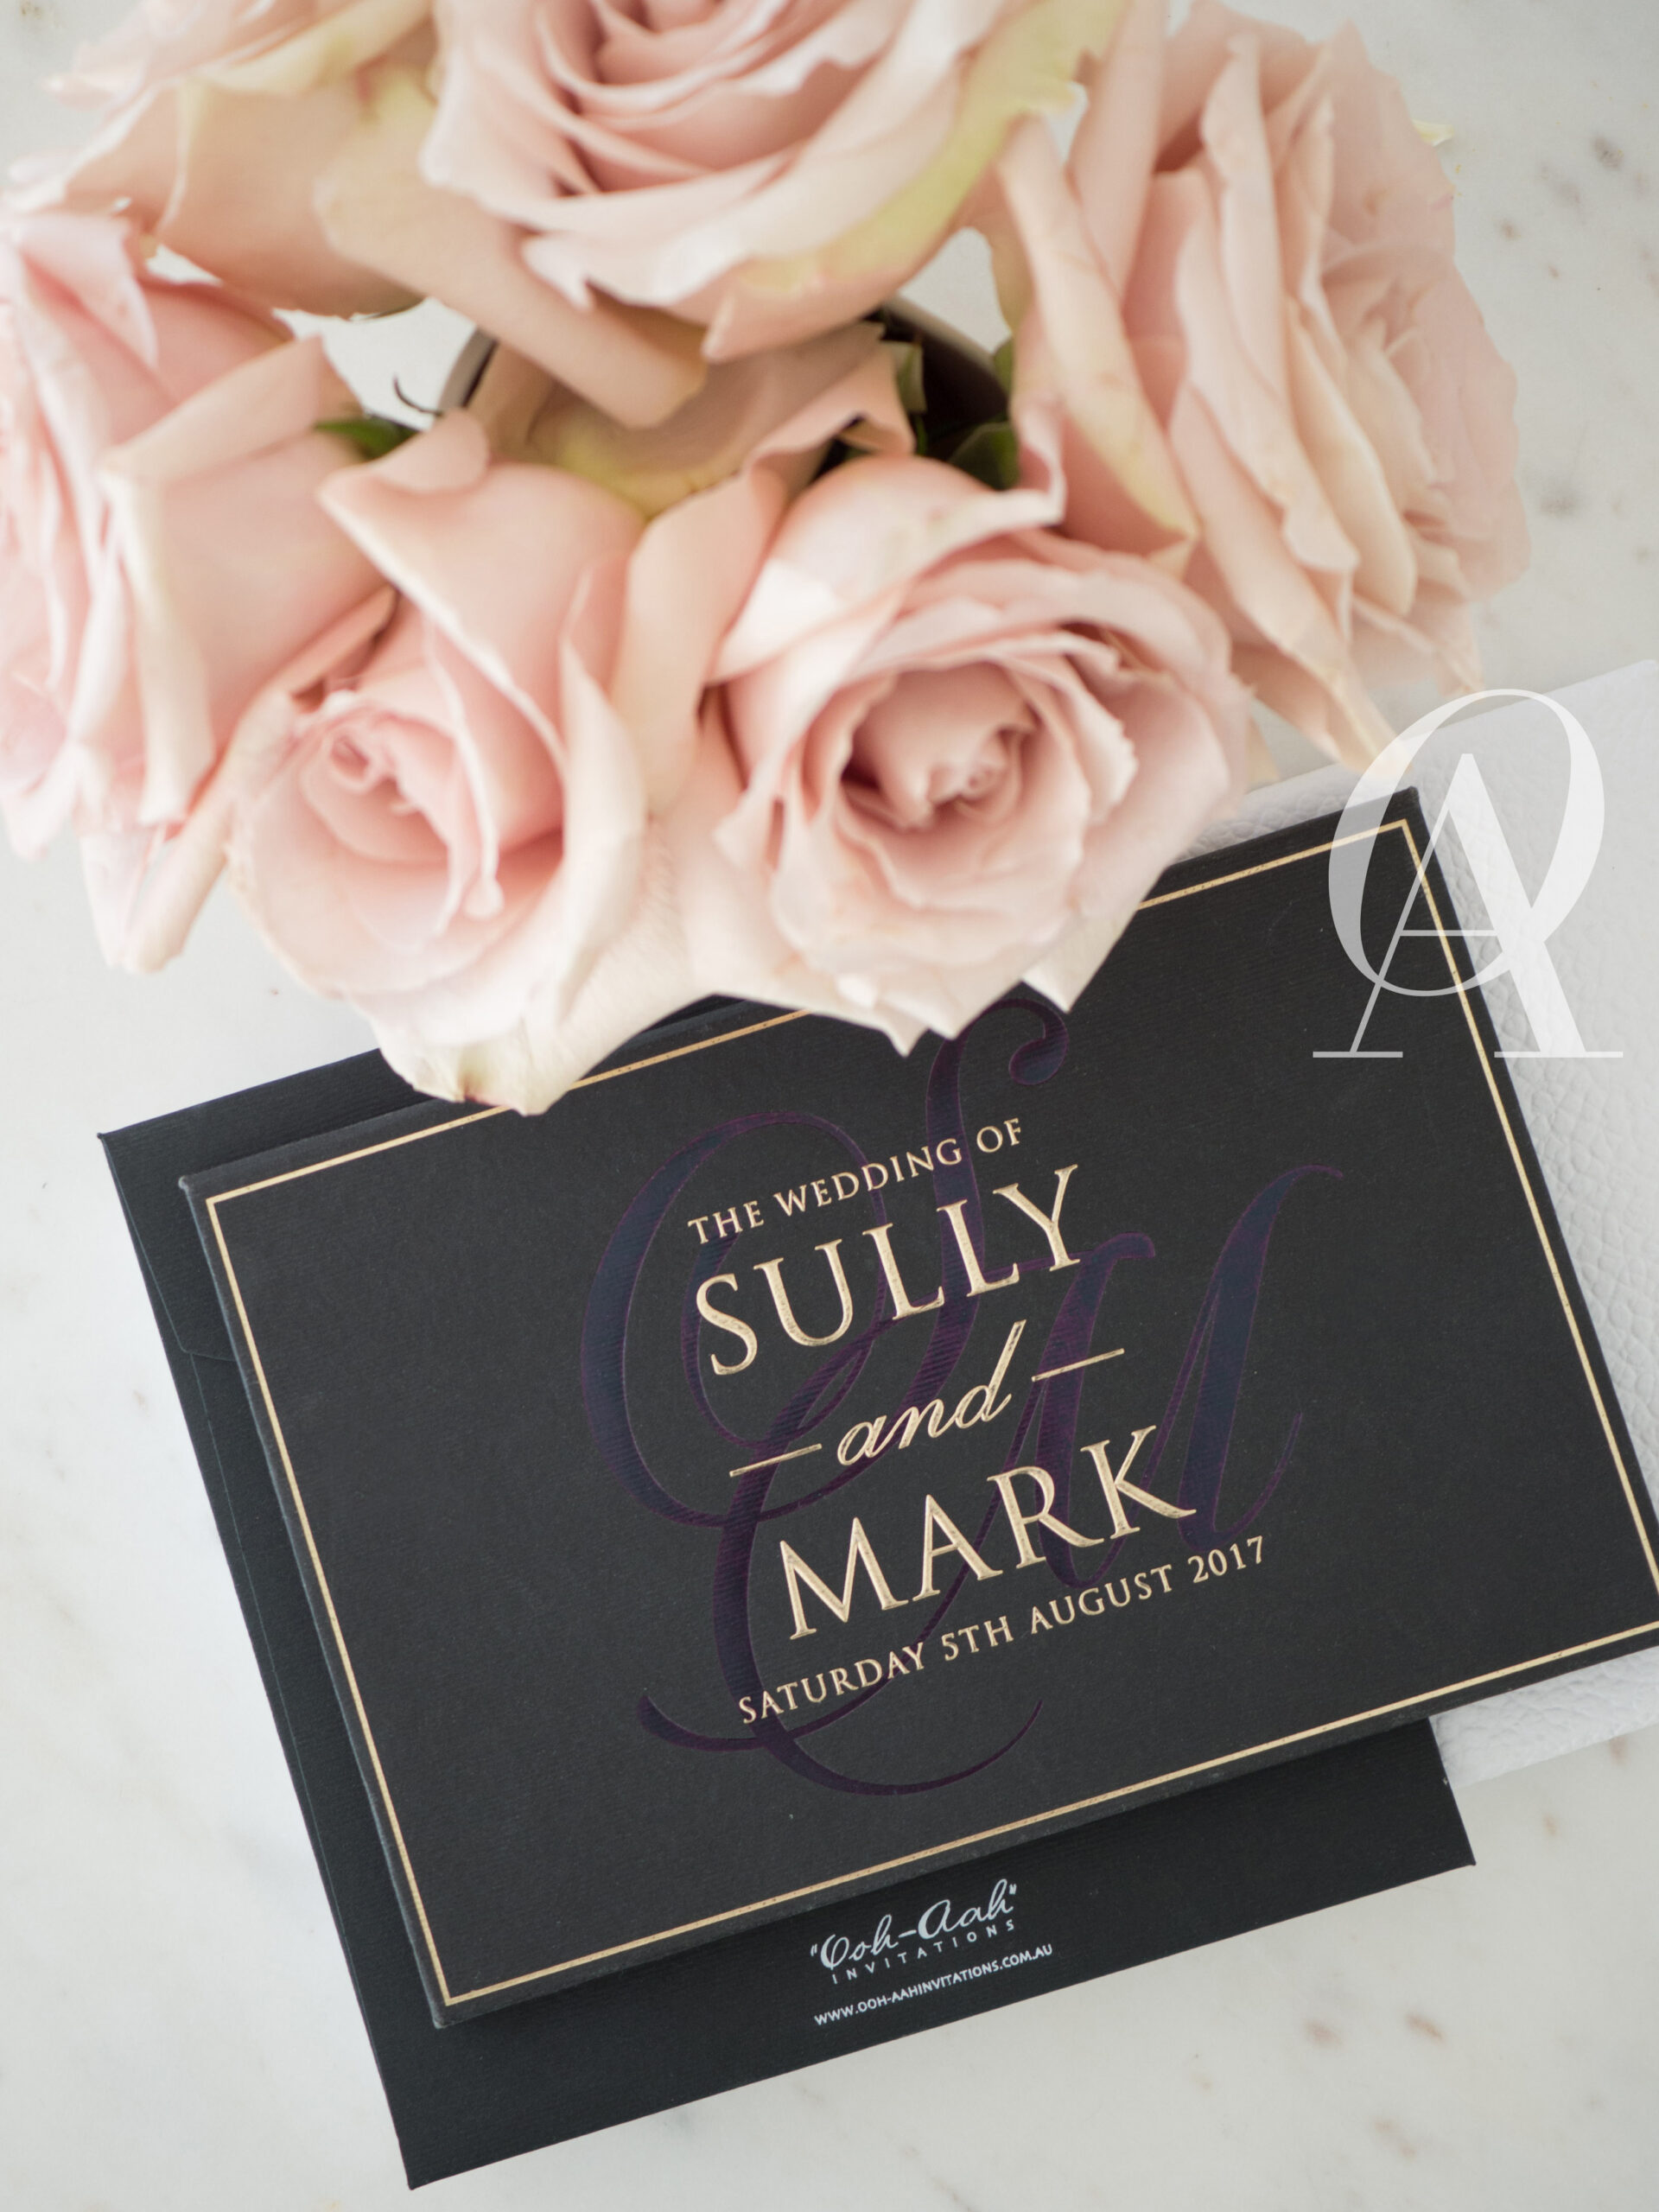 Modern Black and Gold Wedding Invitations with Embossing on Hardcover Booklet